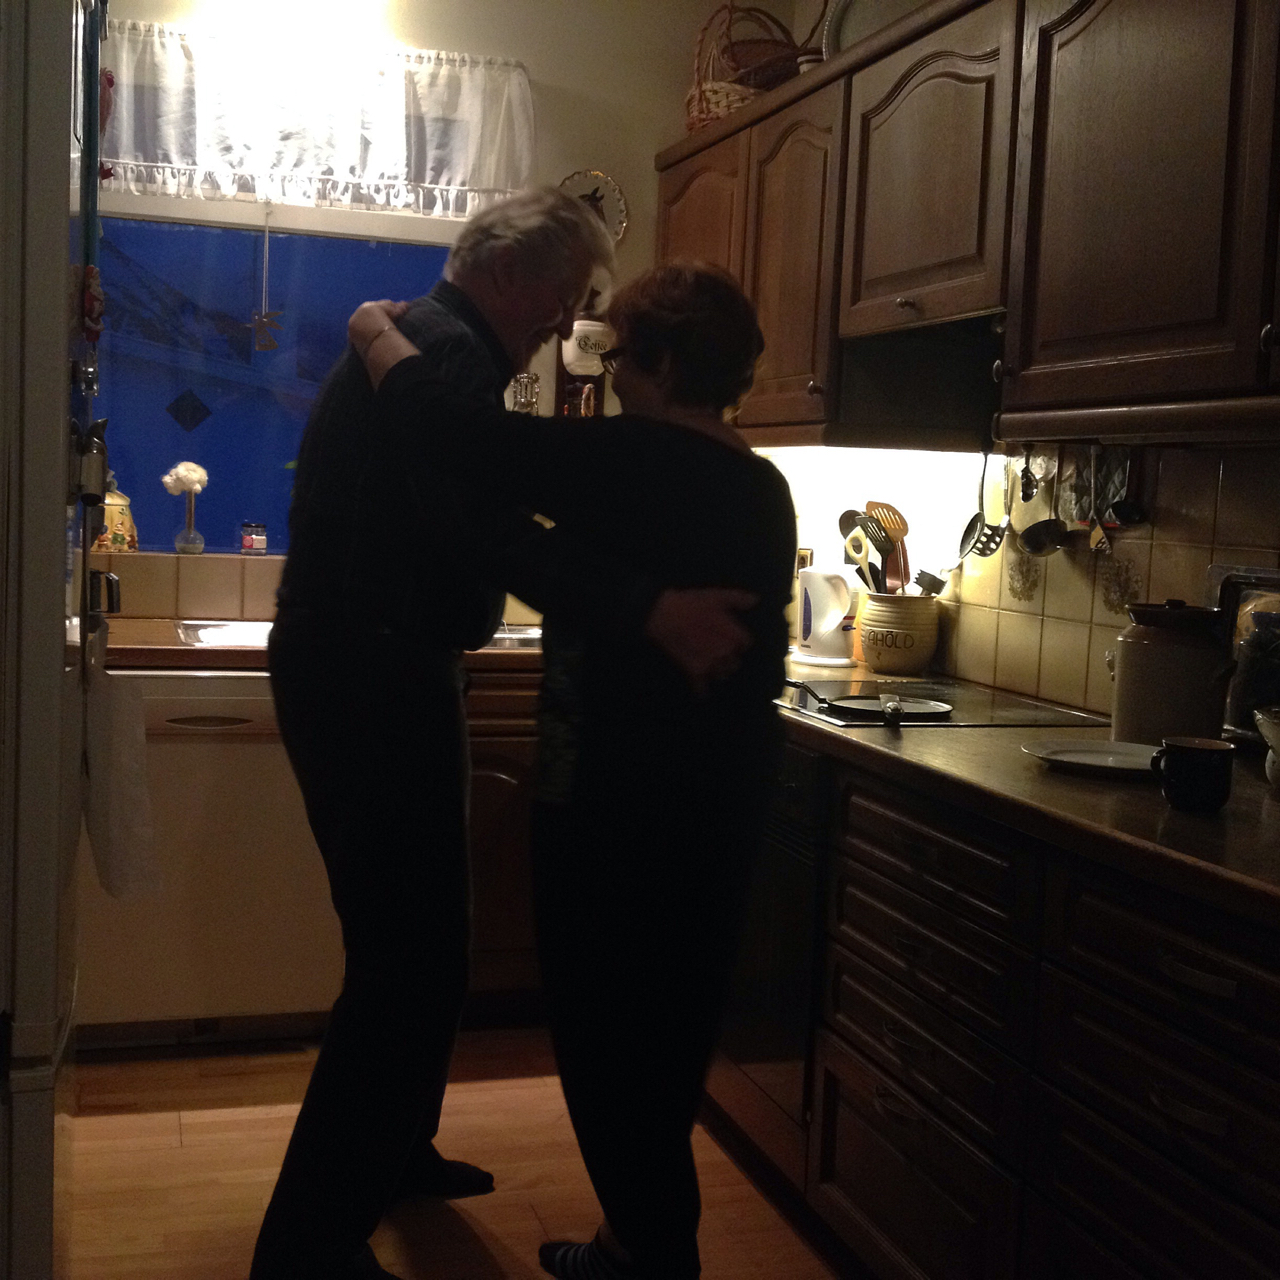 """It's been more than five decades since Brynja and Gunnar met, when he asked her to dance and she said no. Since then, they've become great grandparents. In their Ólafsfjörður kitchen, state radio station RUV is always on. And when they hear an old song they like, they dance; night or day, in stockinged feet or their pyjamas. """"There are so many dances, I don't remember them all,"""" says Brynja, """"but we love to waltz."""" She smiles. """"We've danced our whole lives together."""""""